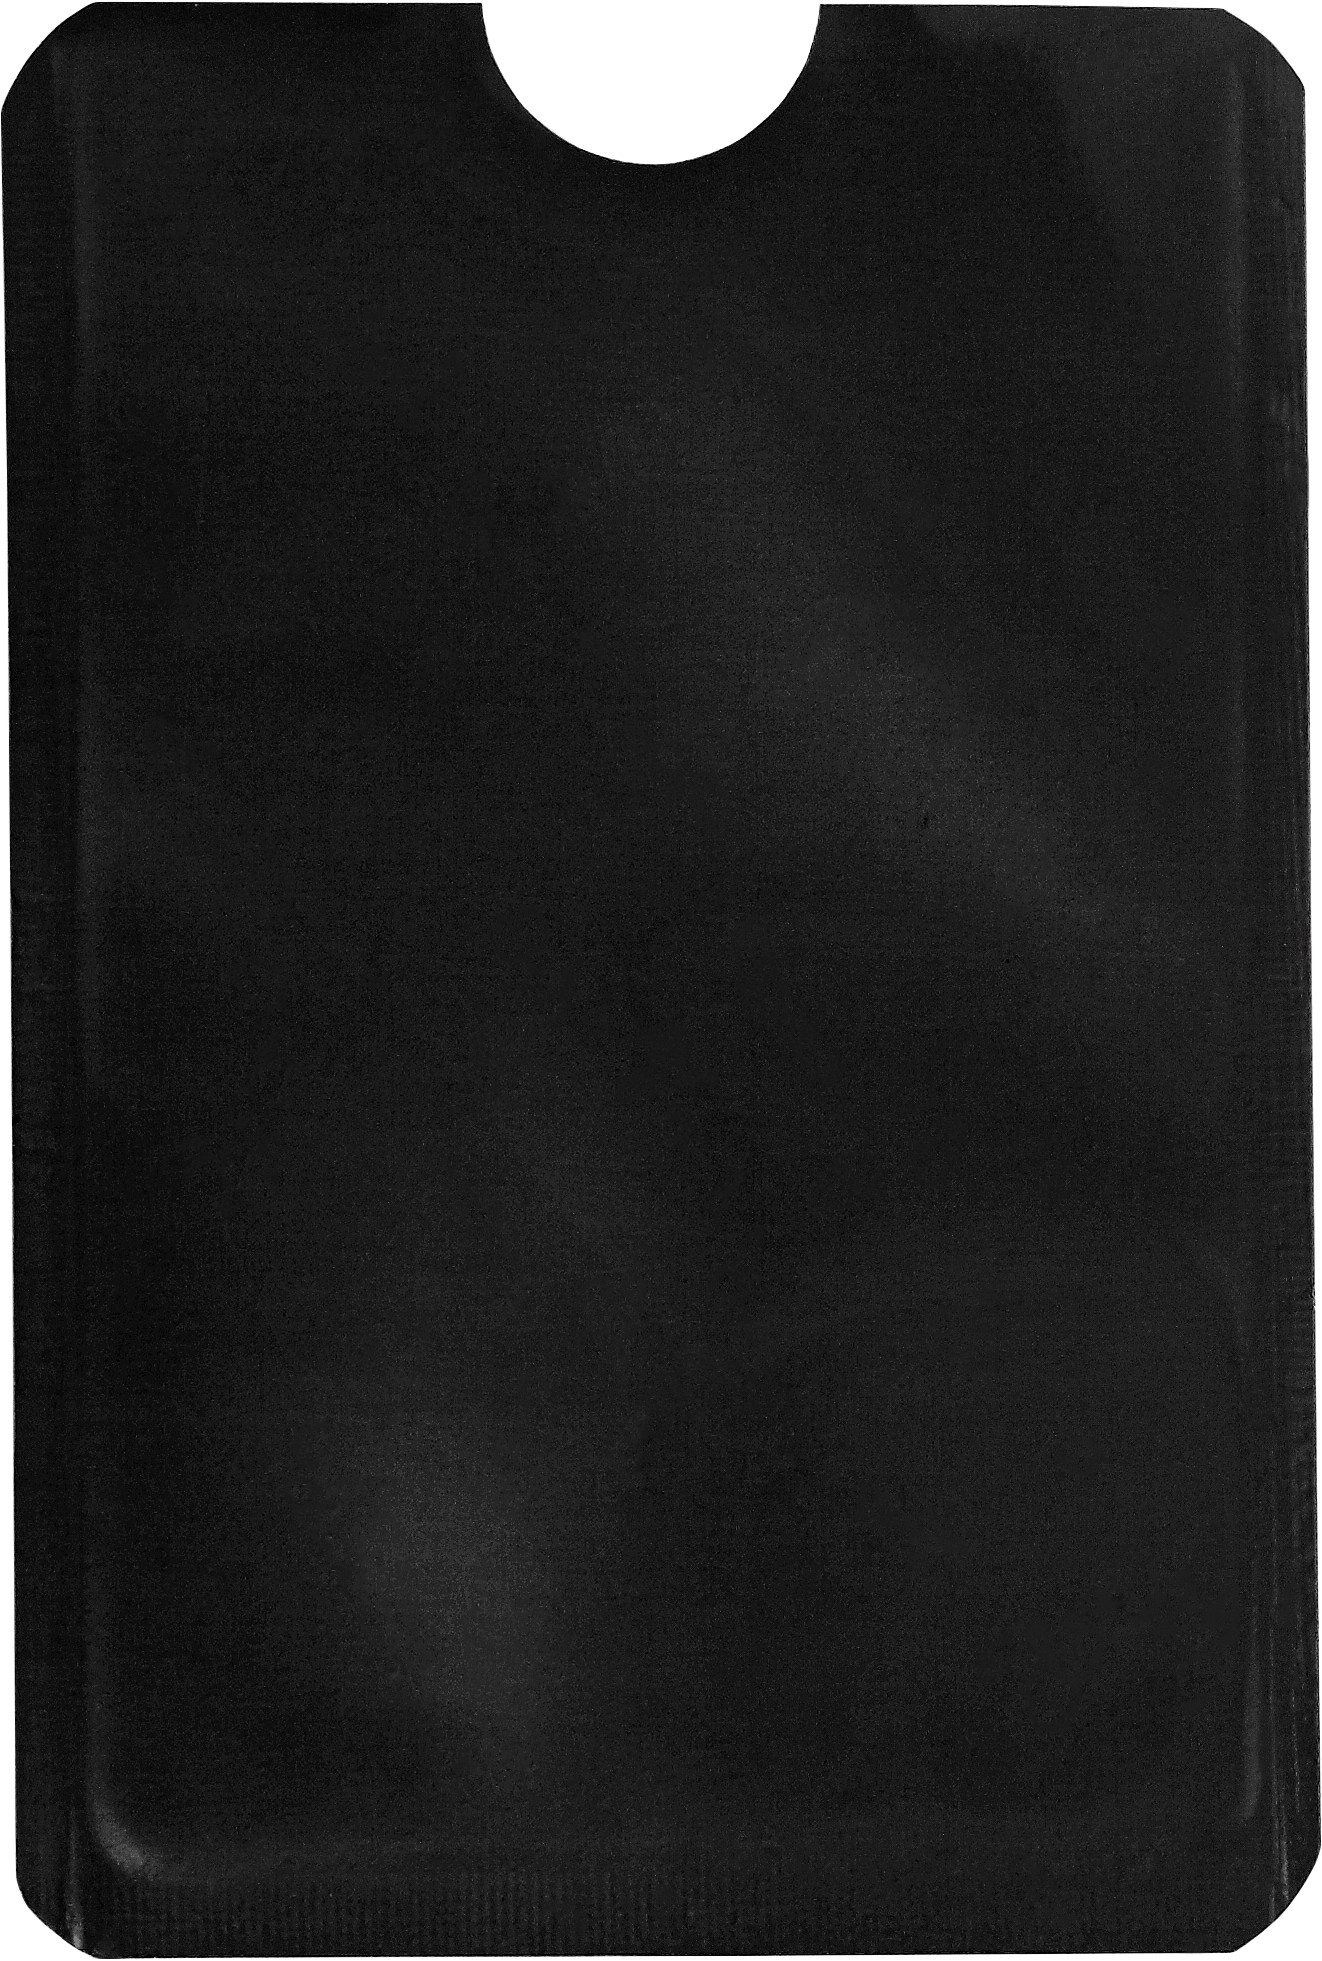 size 40 090ee a457f RFID card holder, Black